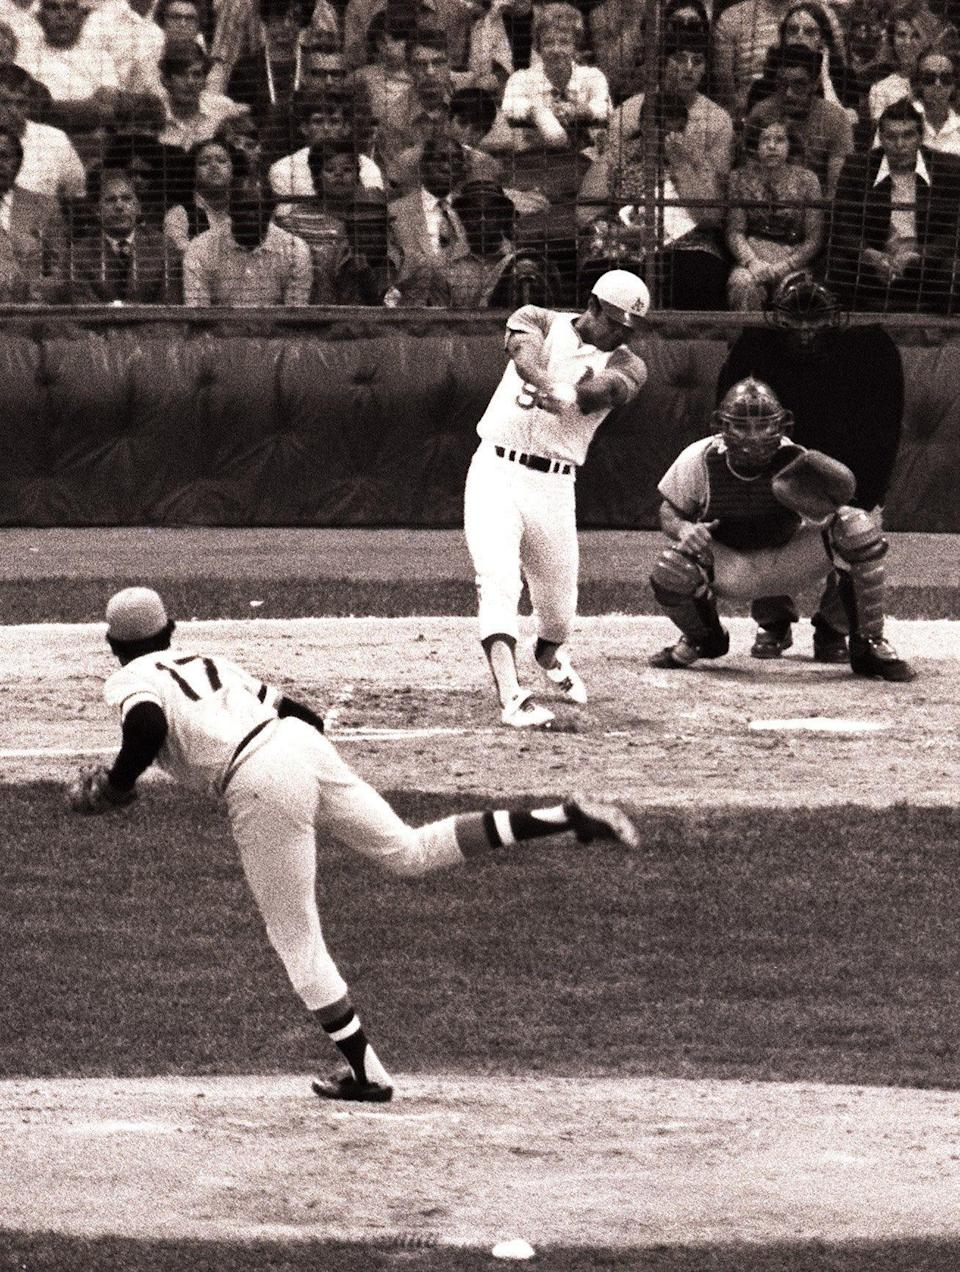 Reggie Jackson, of the Oakland Athletics, hits a two-run home run in the third inning in the All-Star Game on July 13, 1971 at Tiger Stadium in Detroit. National League pitcher Dock Ellis of the Pittsburgh Pirates was pitching to catcher Johnny Bench, of the Cincinnati Reds.